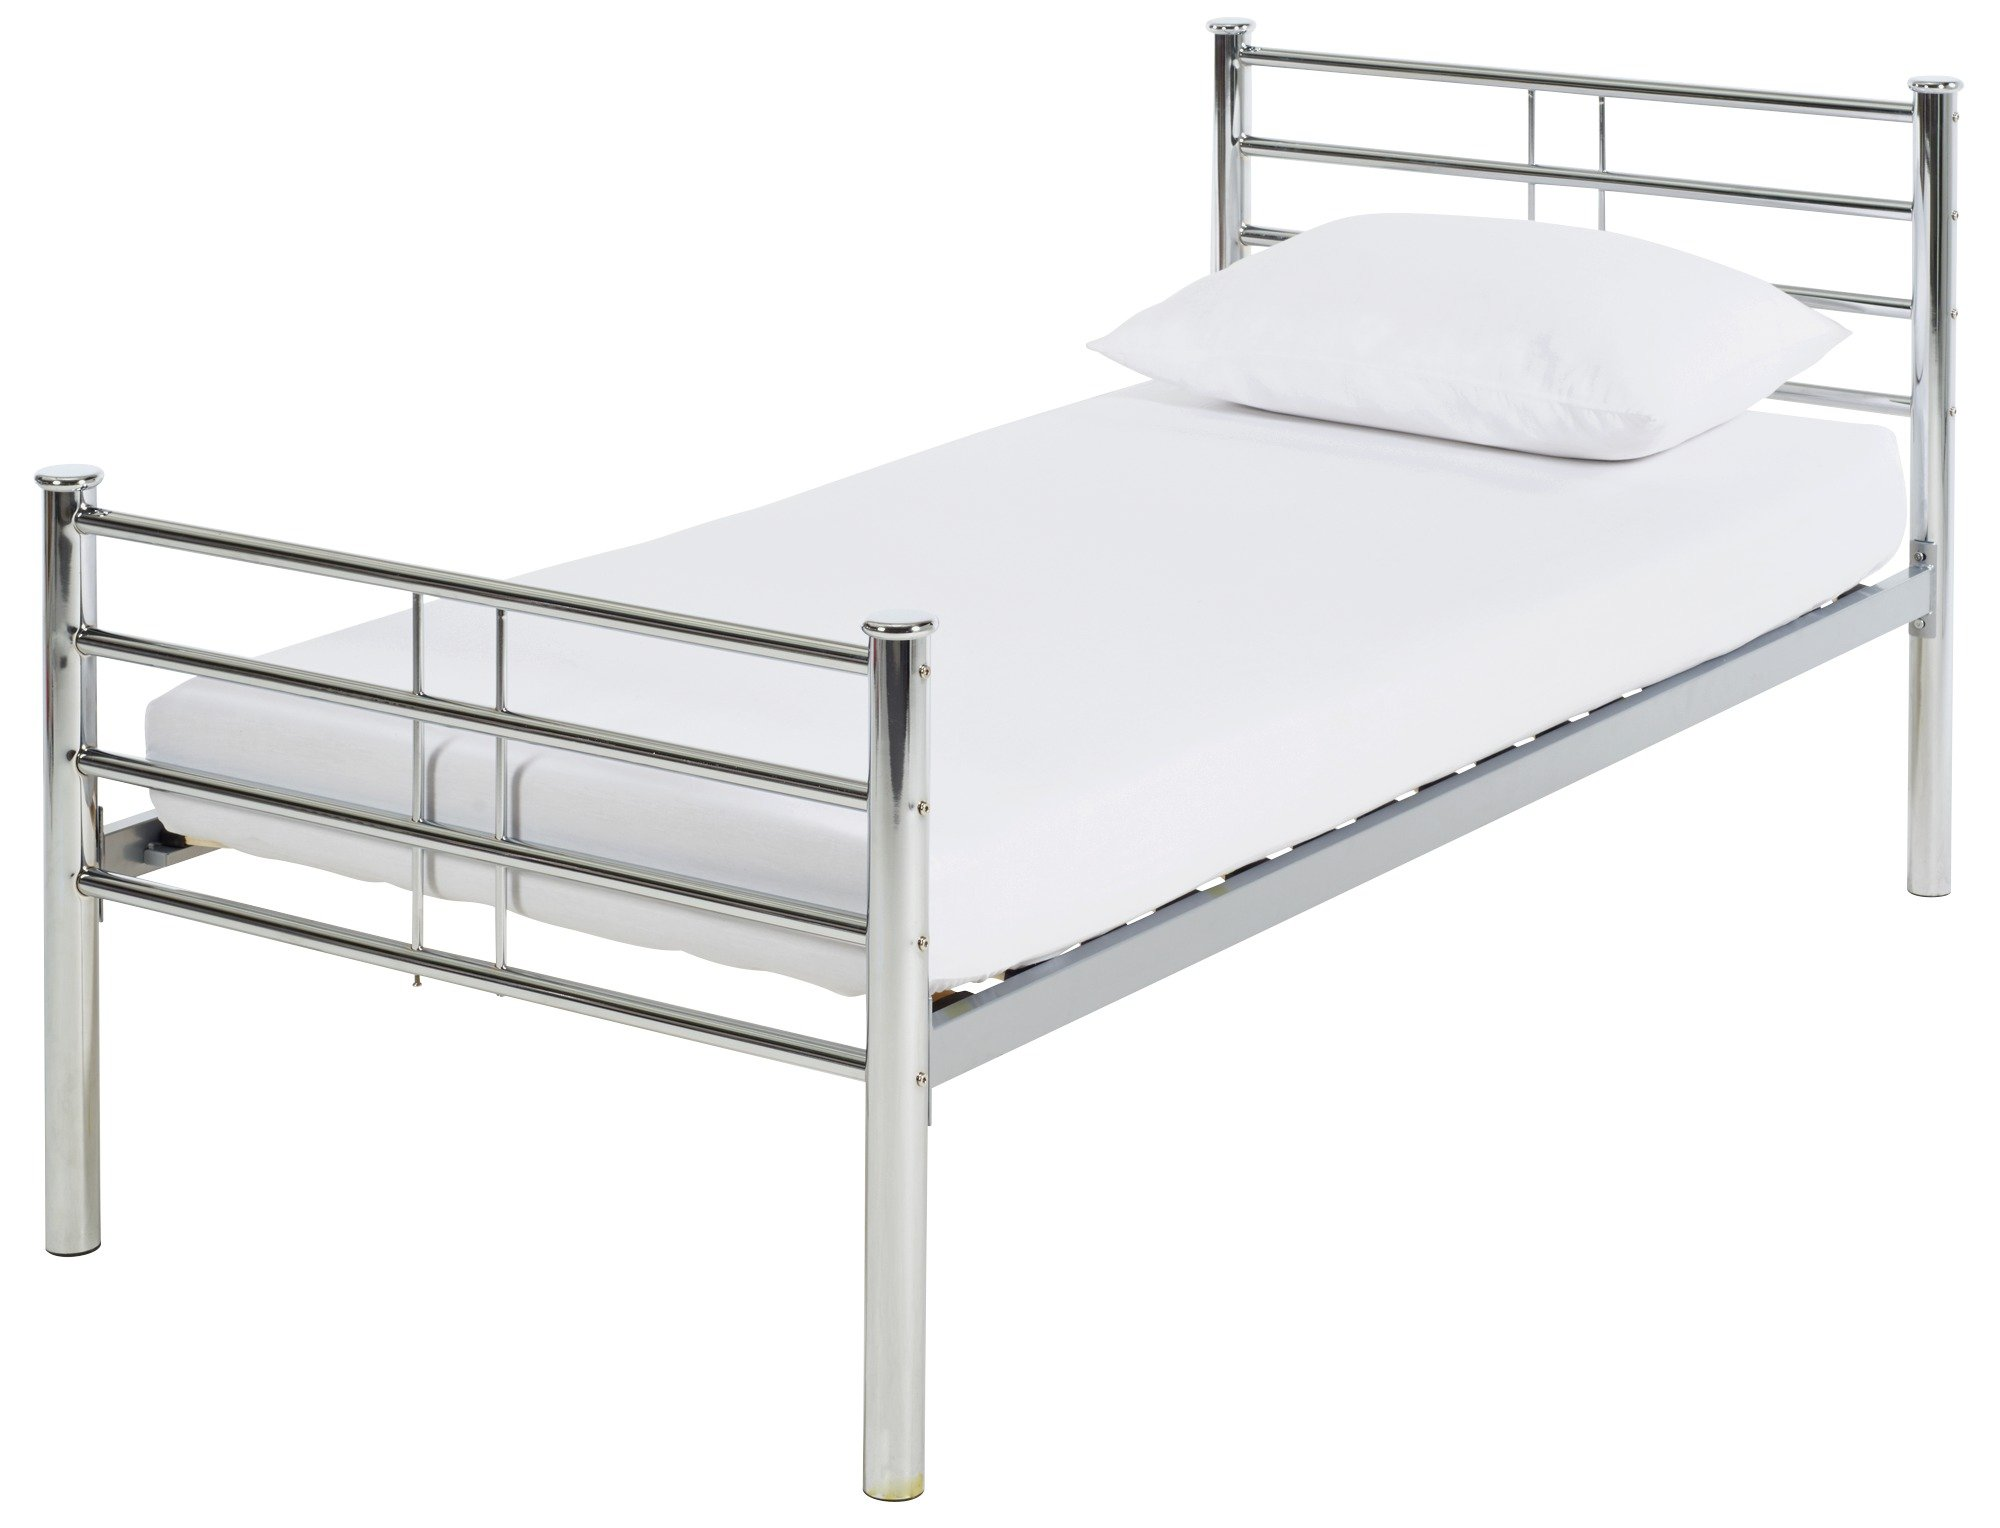 Image of Collection Kaira Single Bed Frame - Chrome